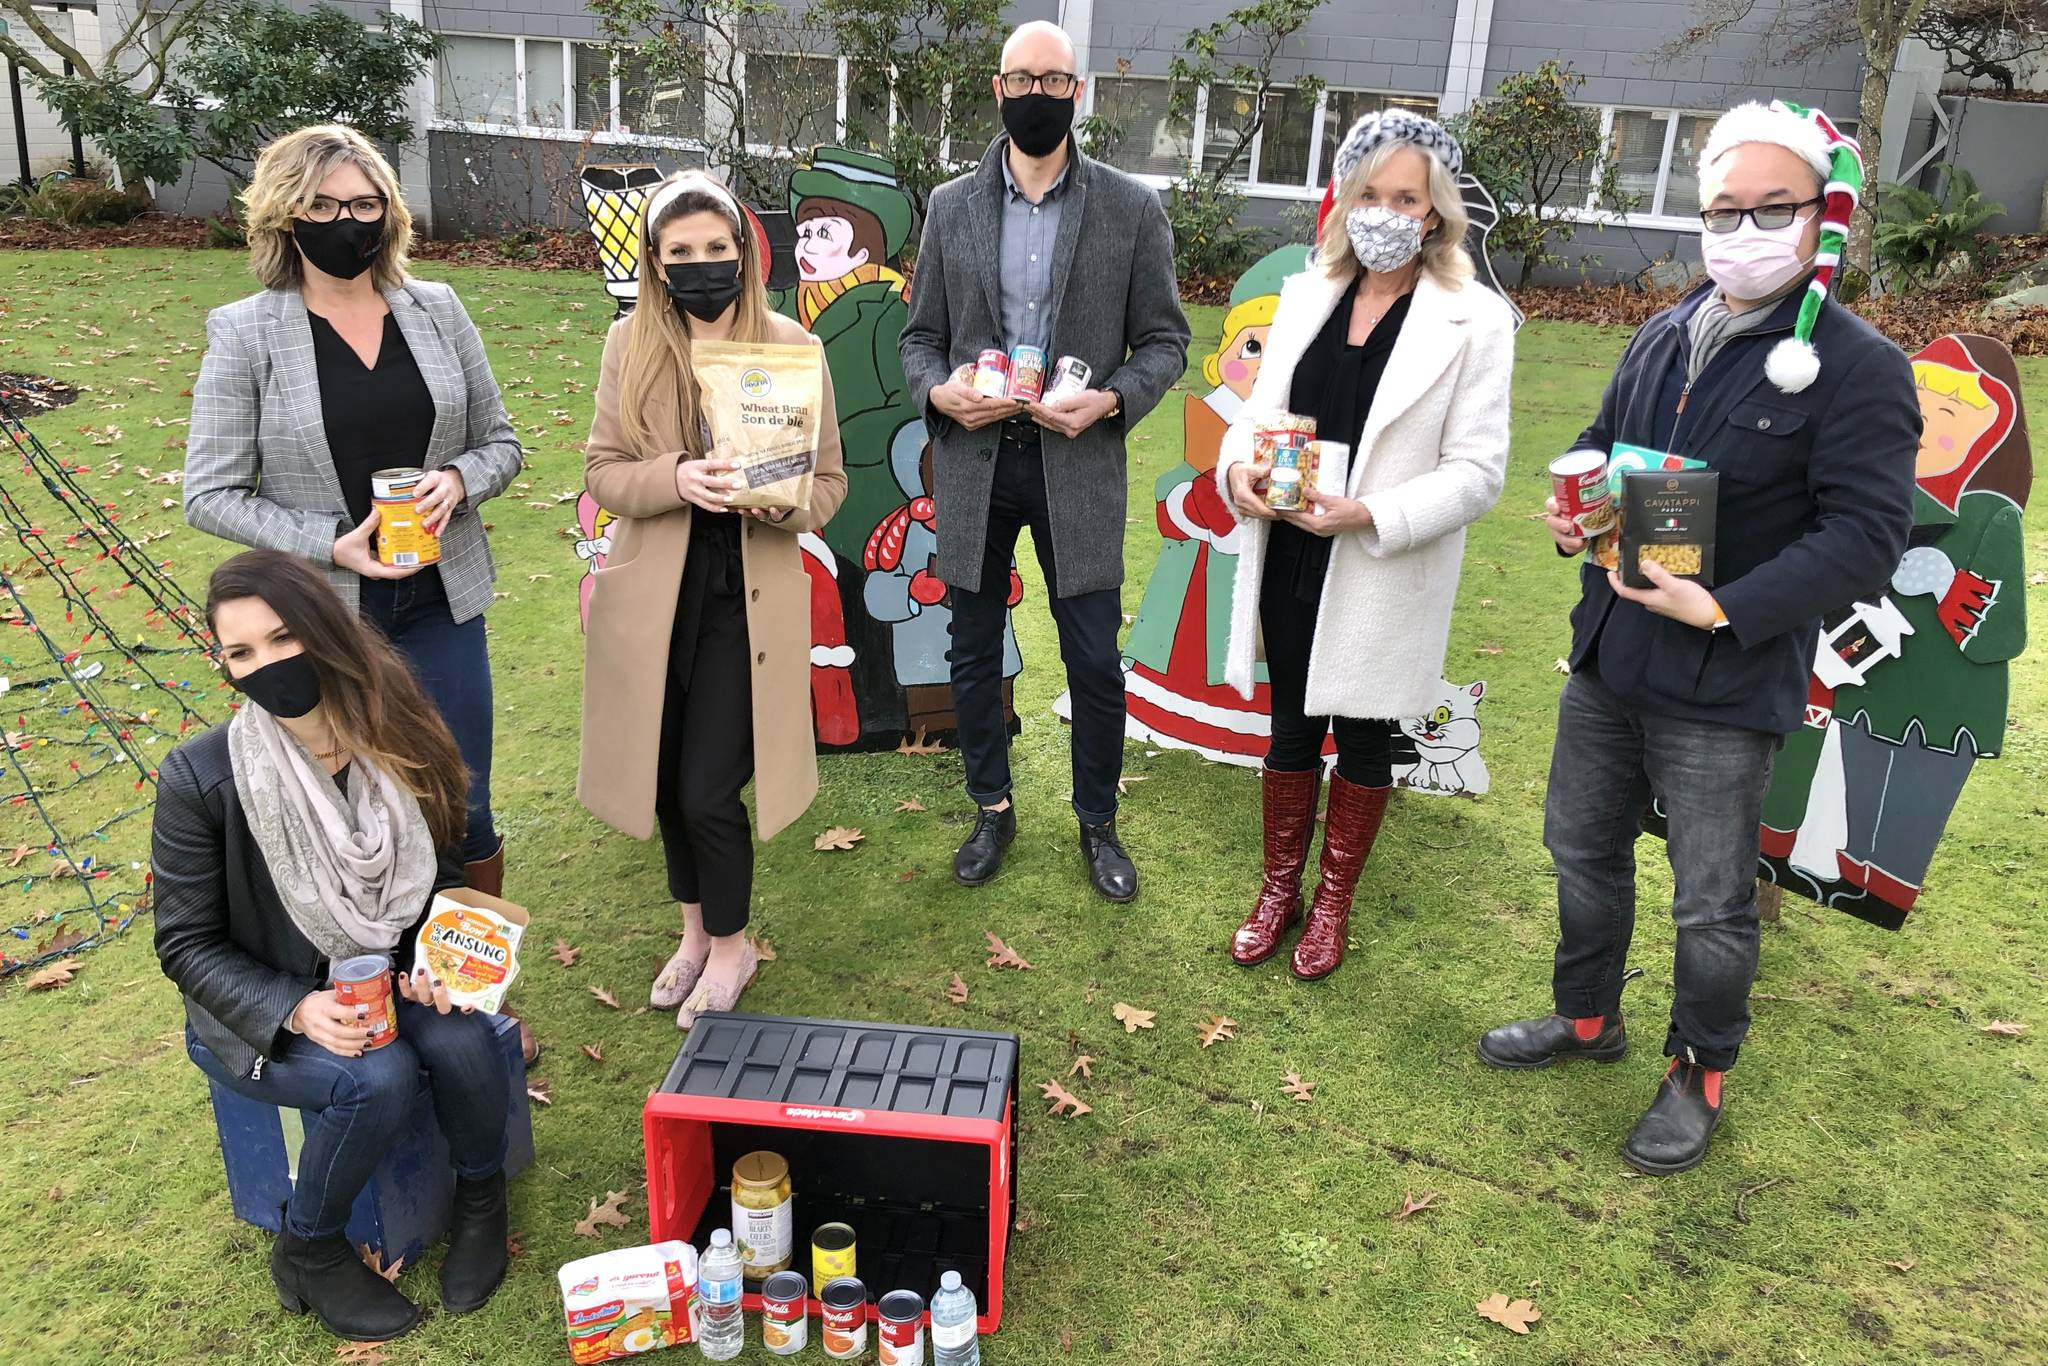 Oak Bay Village real estate agents ready to compete in the annual Realtor Food Bank Challenge, from left, Nancy Stratton and Emily Moyes from The Agency, Mark Gutnecht and Krista Voitchovsky from Engle & Volkers, and Tony Joe from Re/Max, and in front, Rebecca Barritt from The Agency. (Travis Paterson/News Staff)